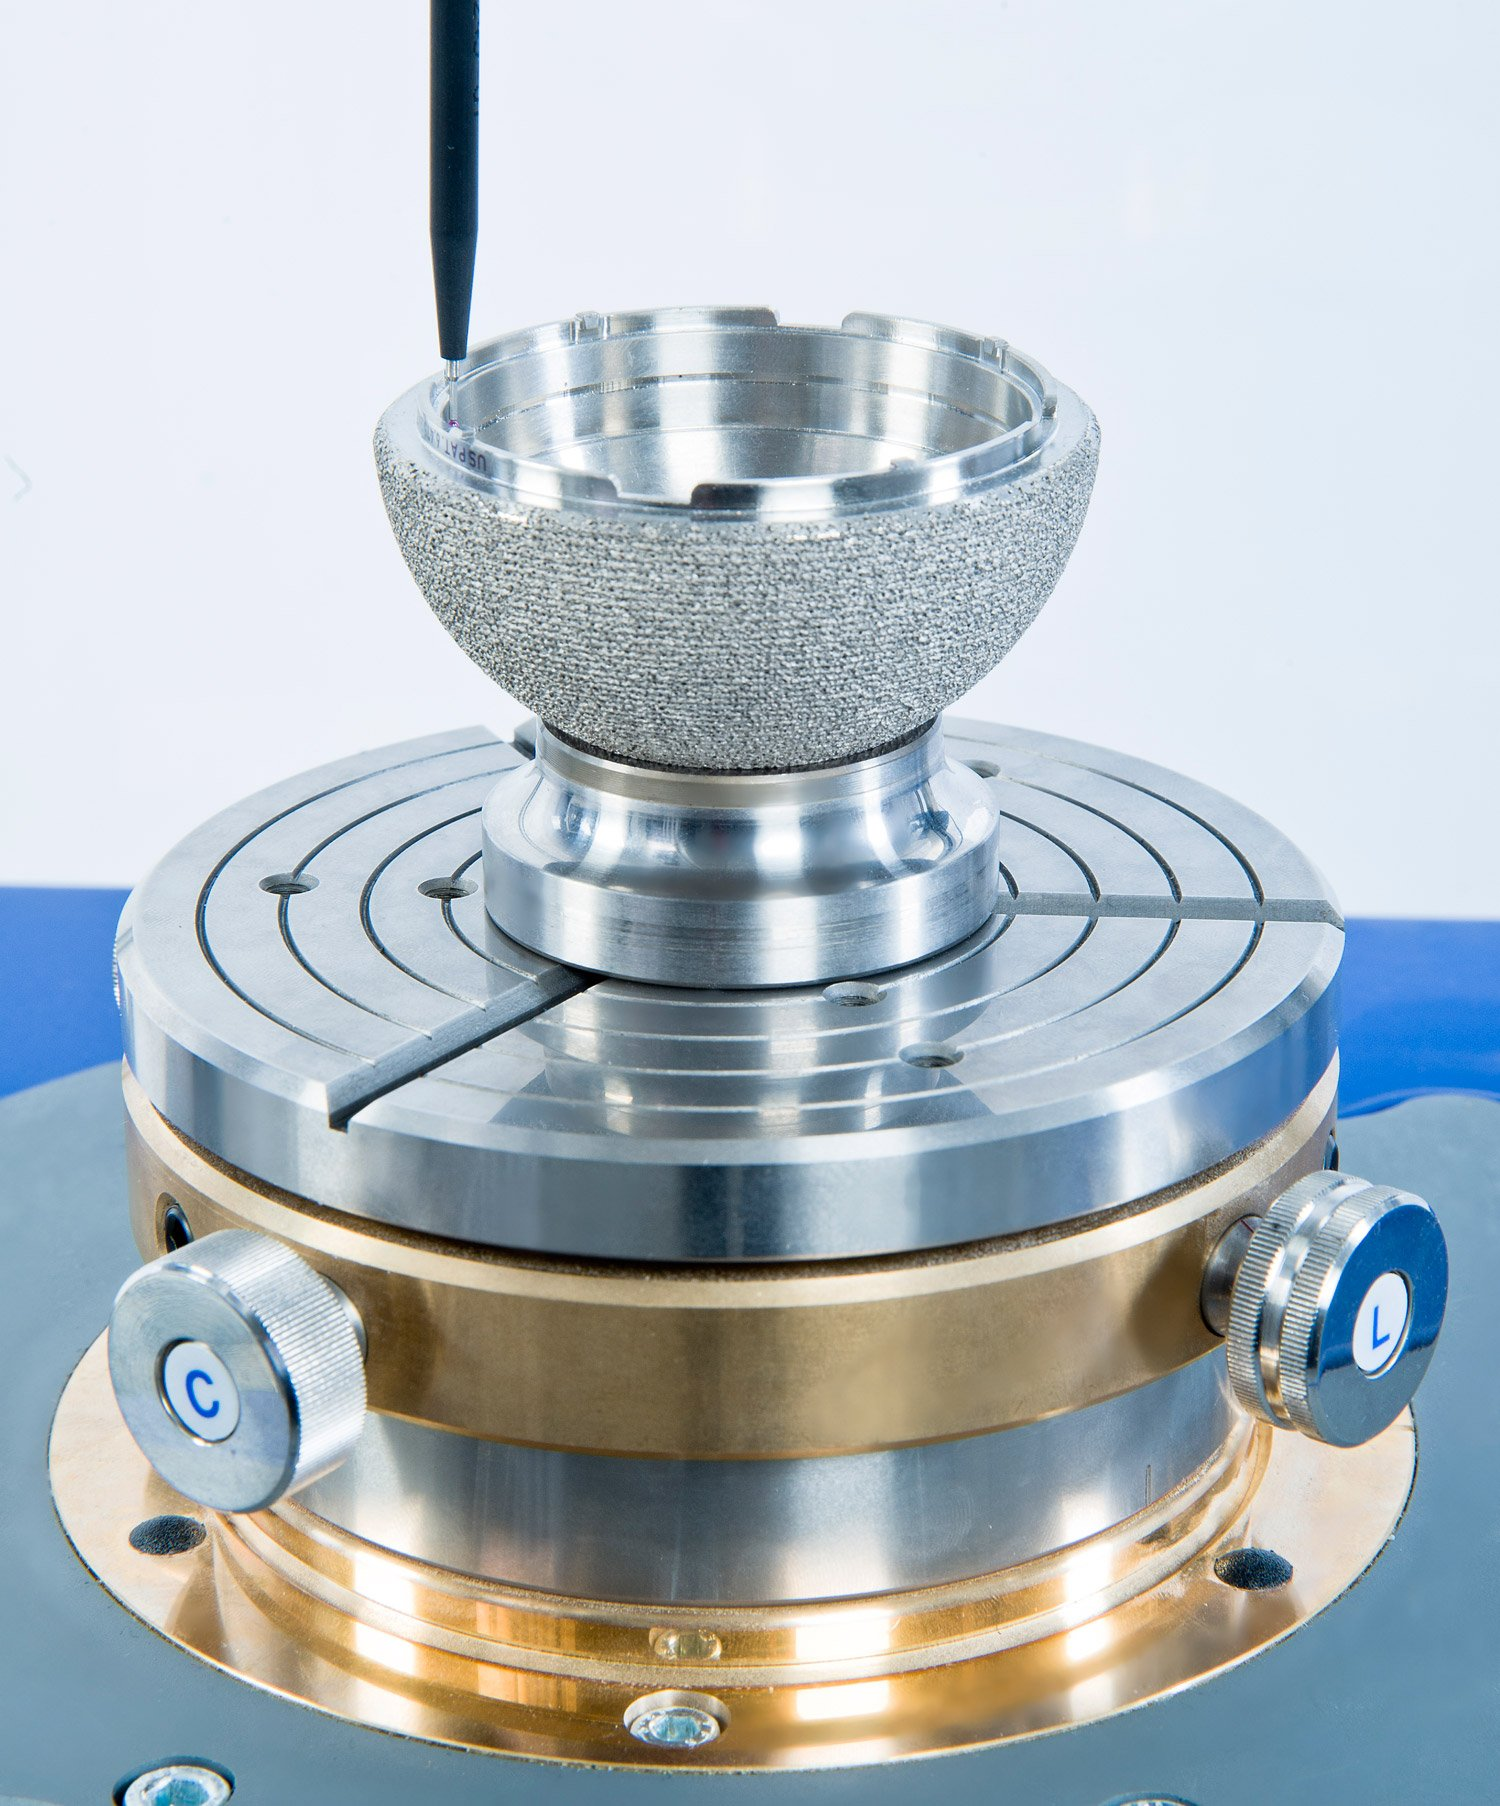 Surtronic r50-80 Roundness Measuring System for Shop Floor Applications